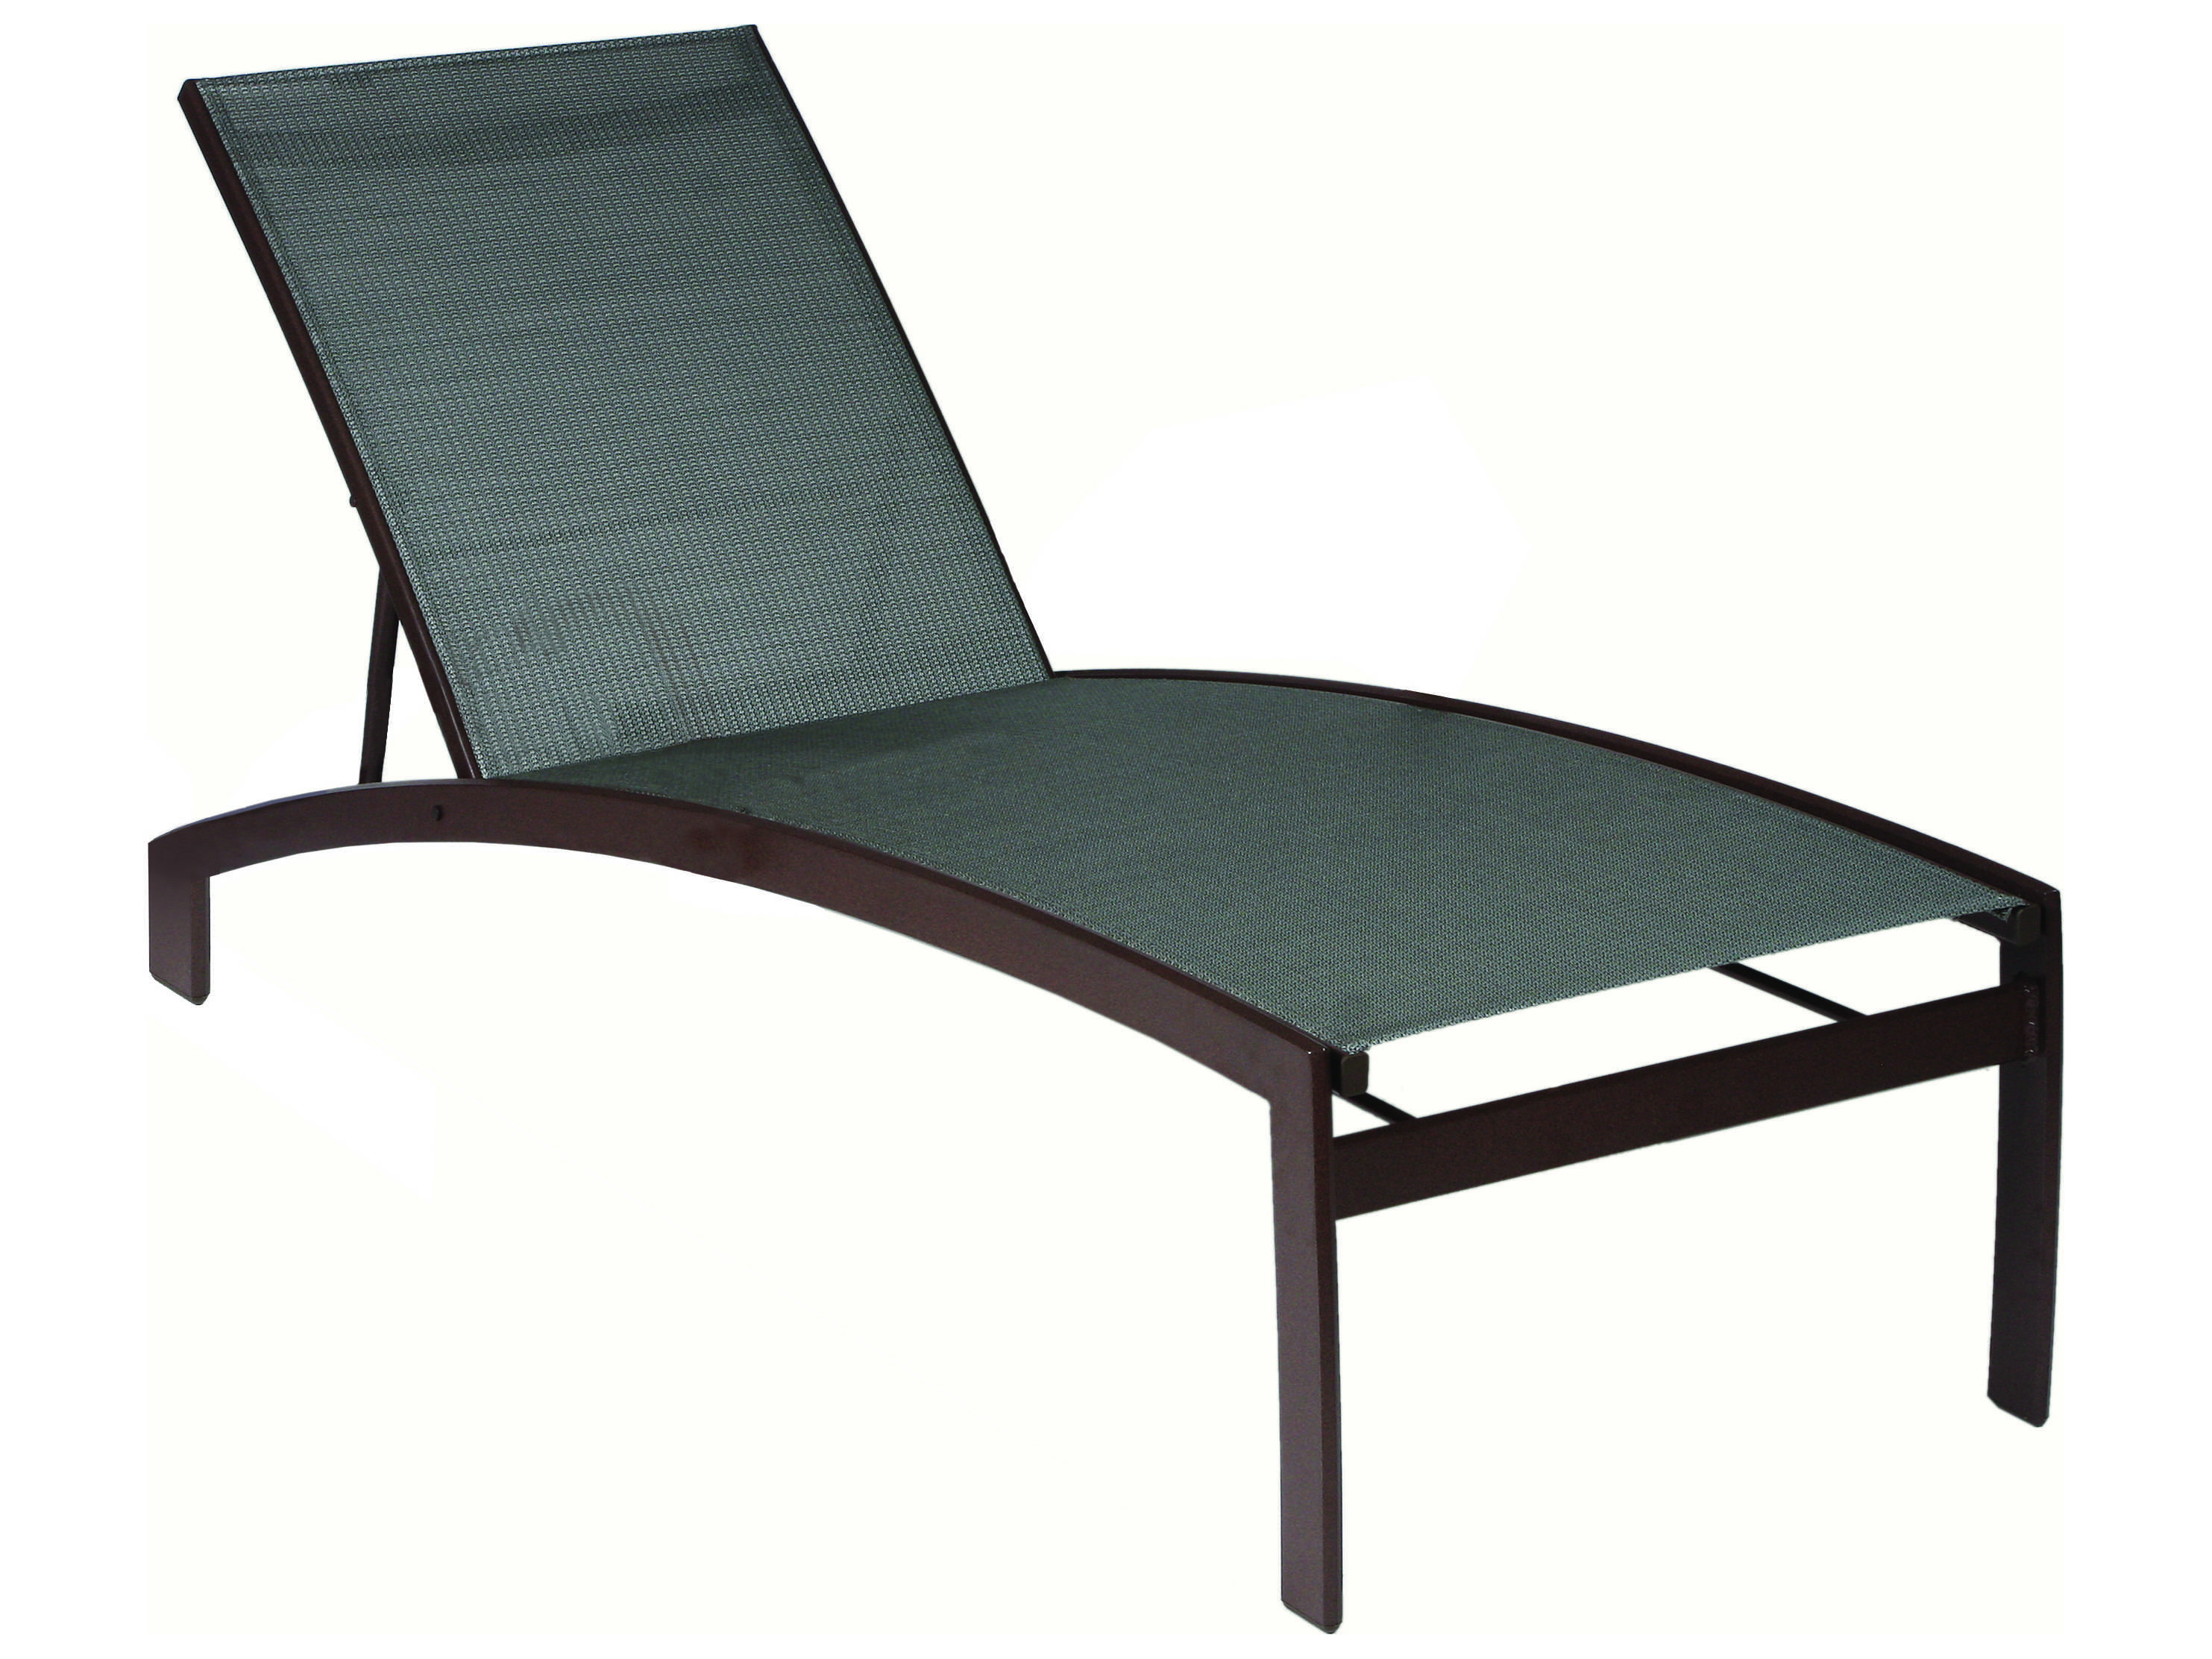 Sling Chaise Lounge Chair Suncoast Vision Sling Cast Aluminum Chaise Lounge Su7993